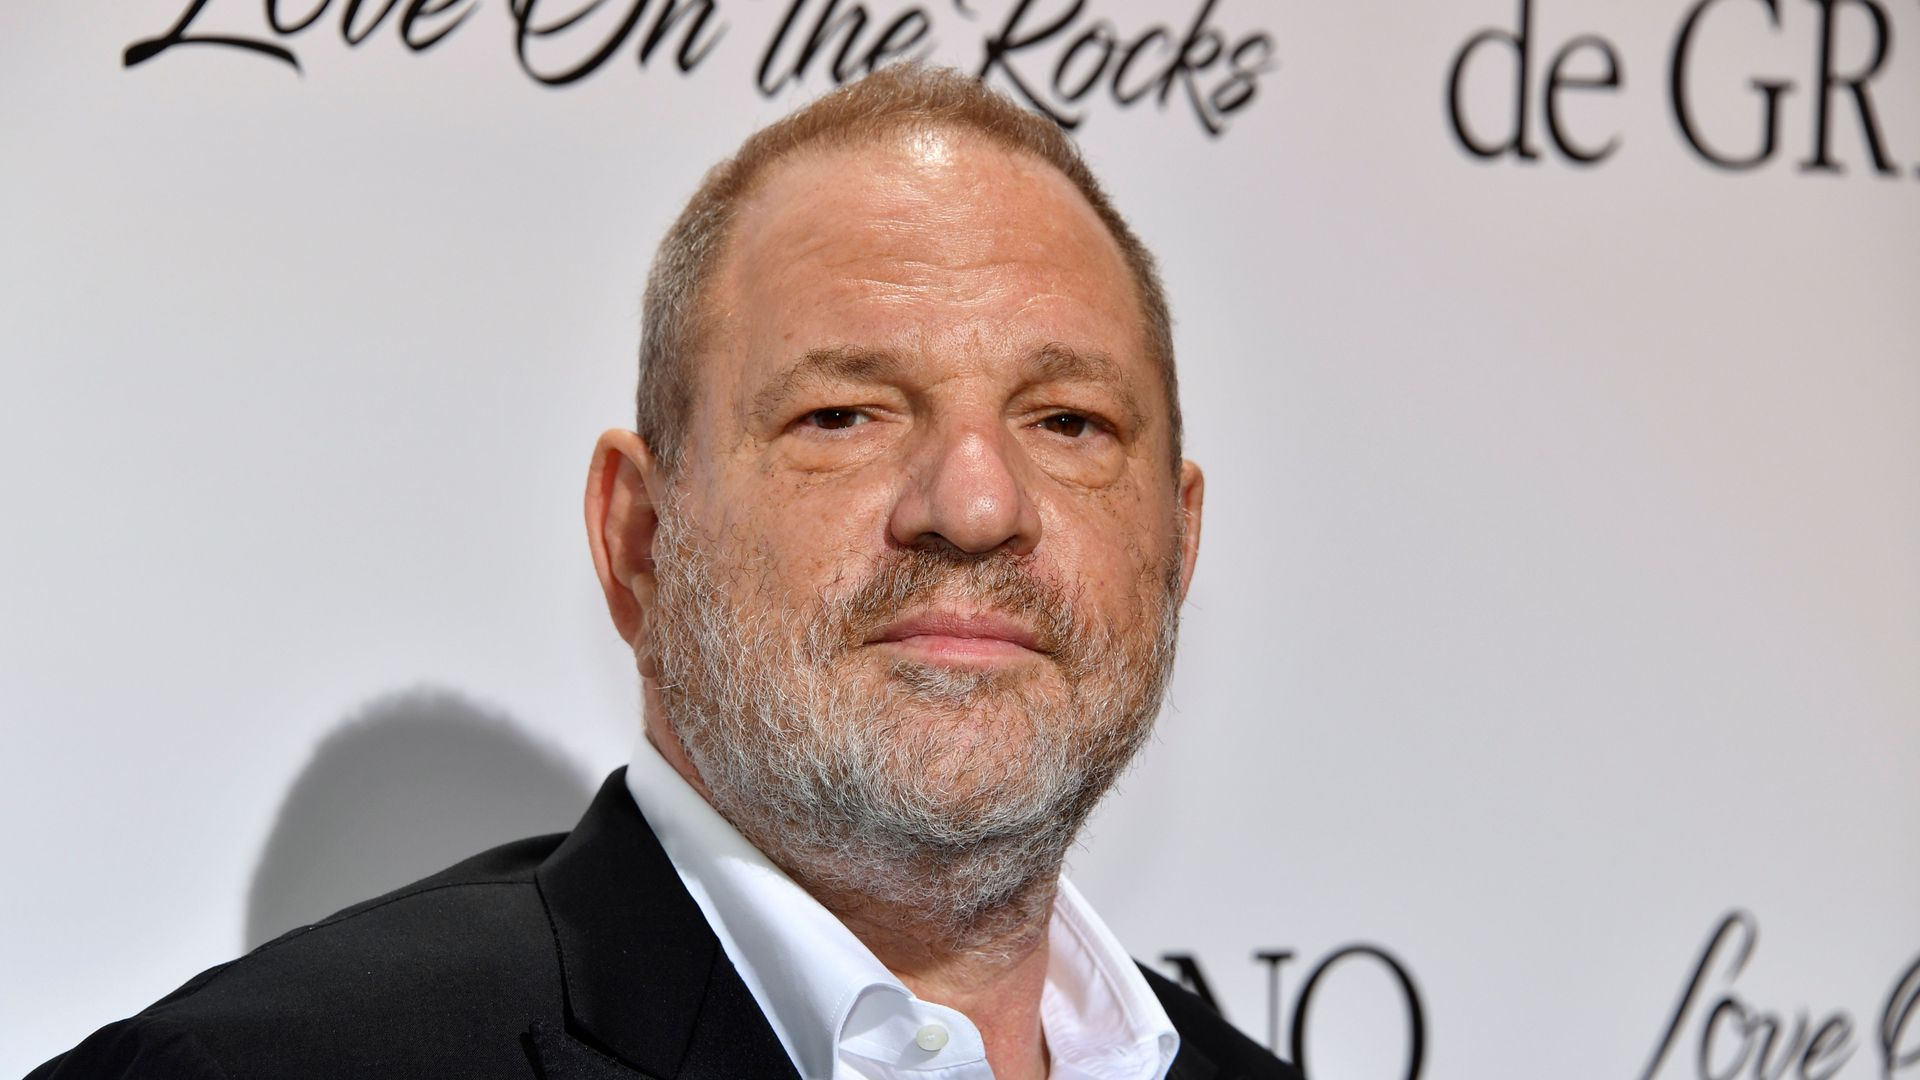 New York AG slaps Weinstein Co. and co-founders with civil rights suit